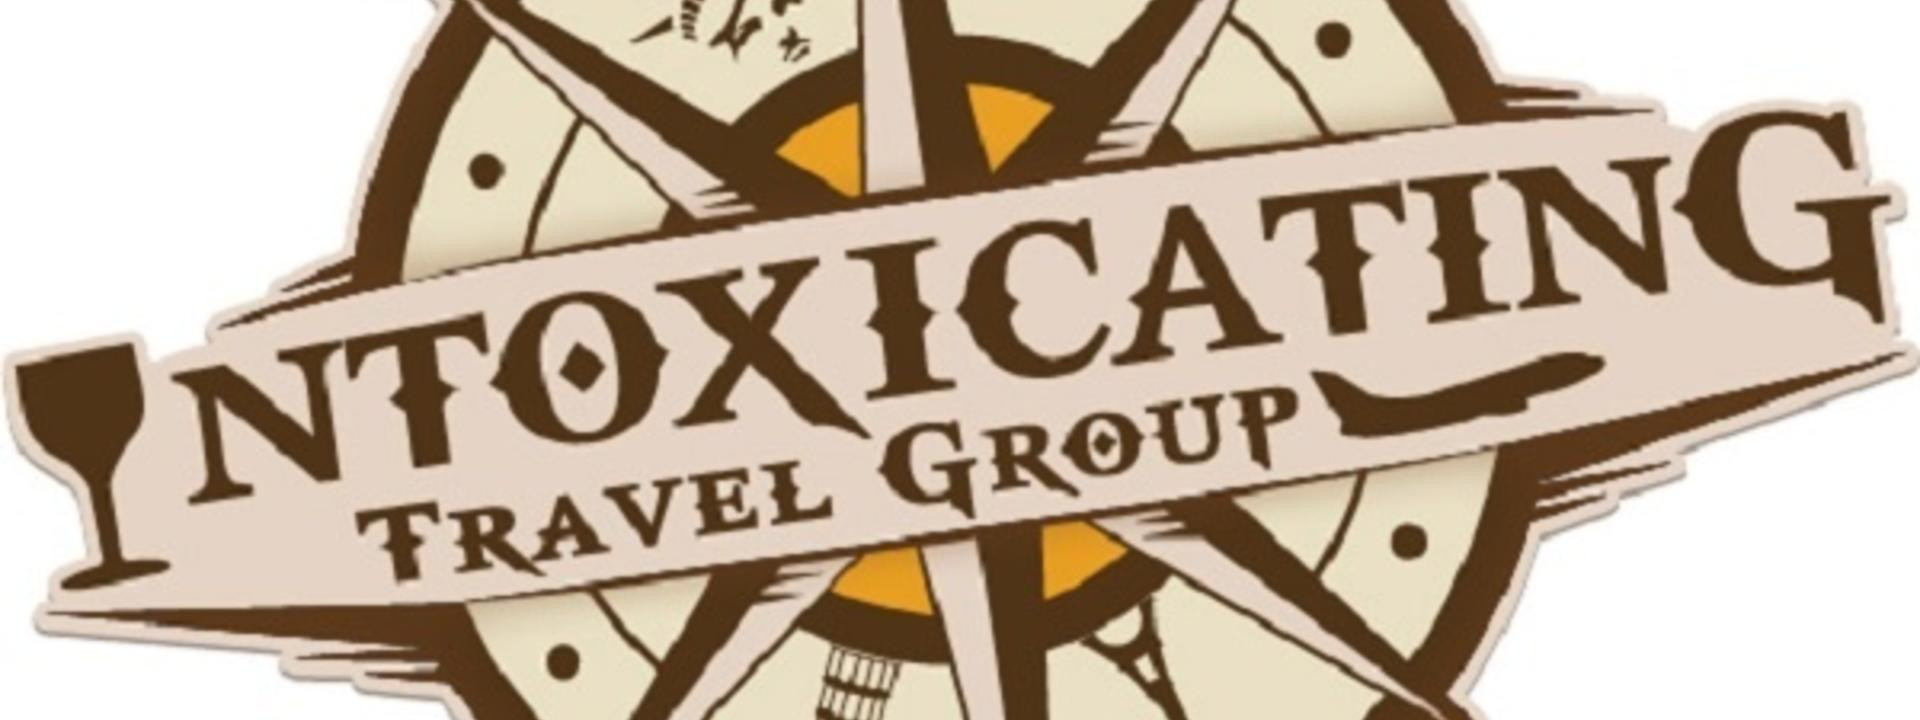 Logo: Intoxicating Travel Group llc